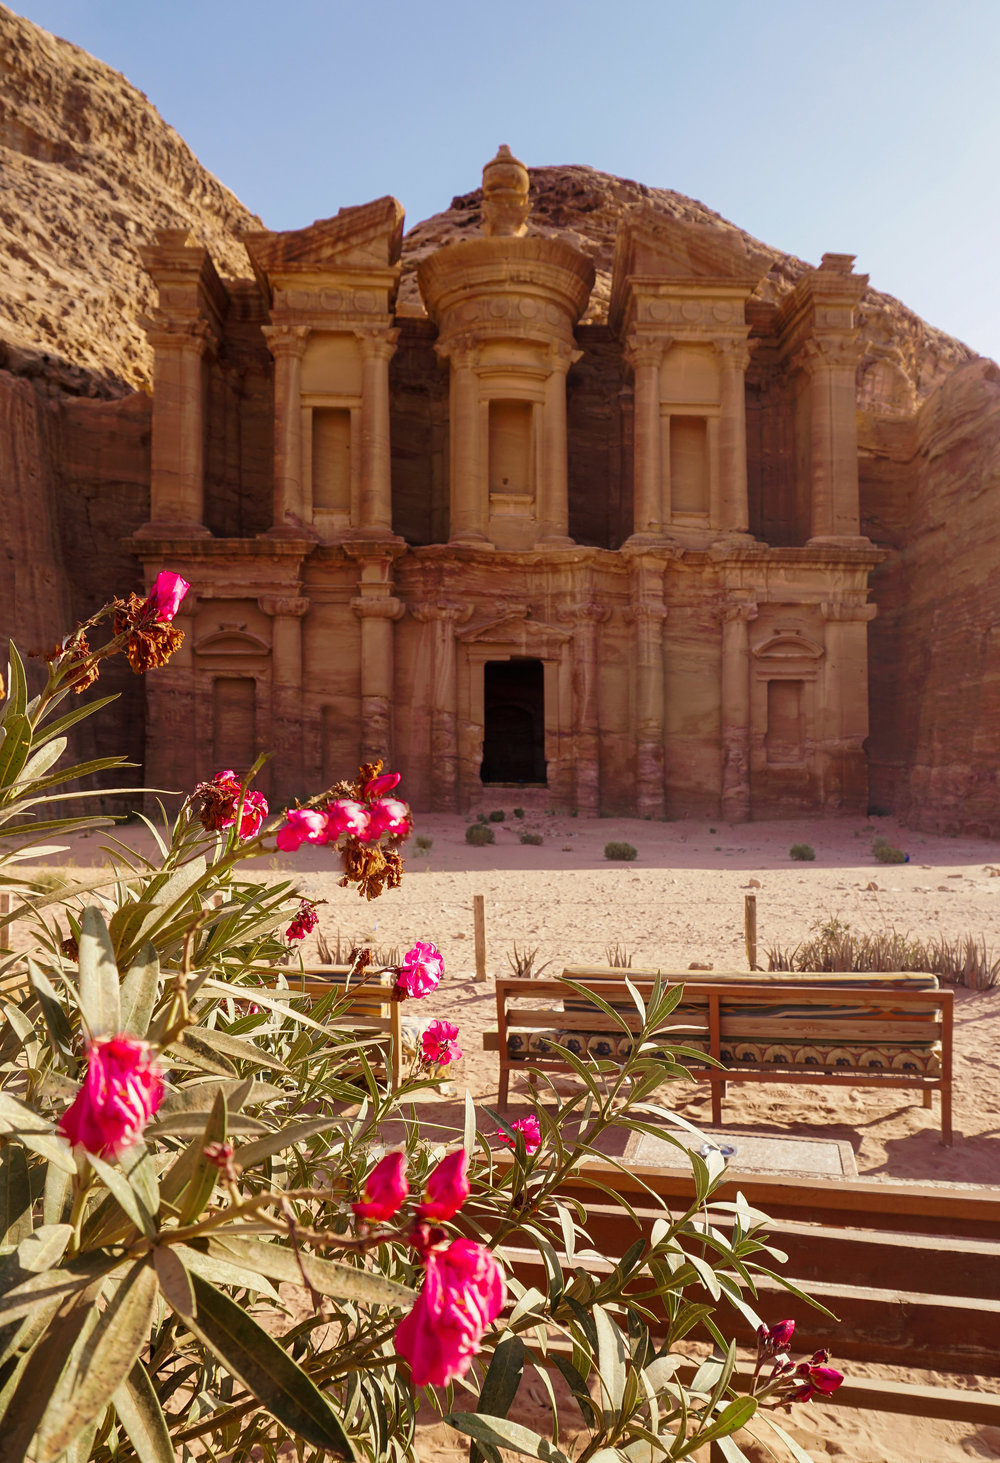 SLOW THE PACE AT PETRA